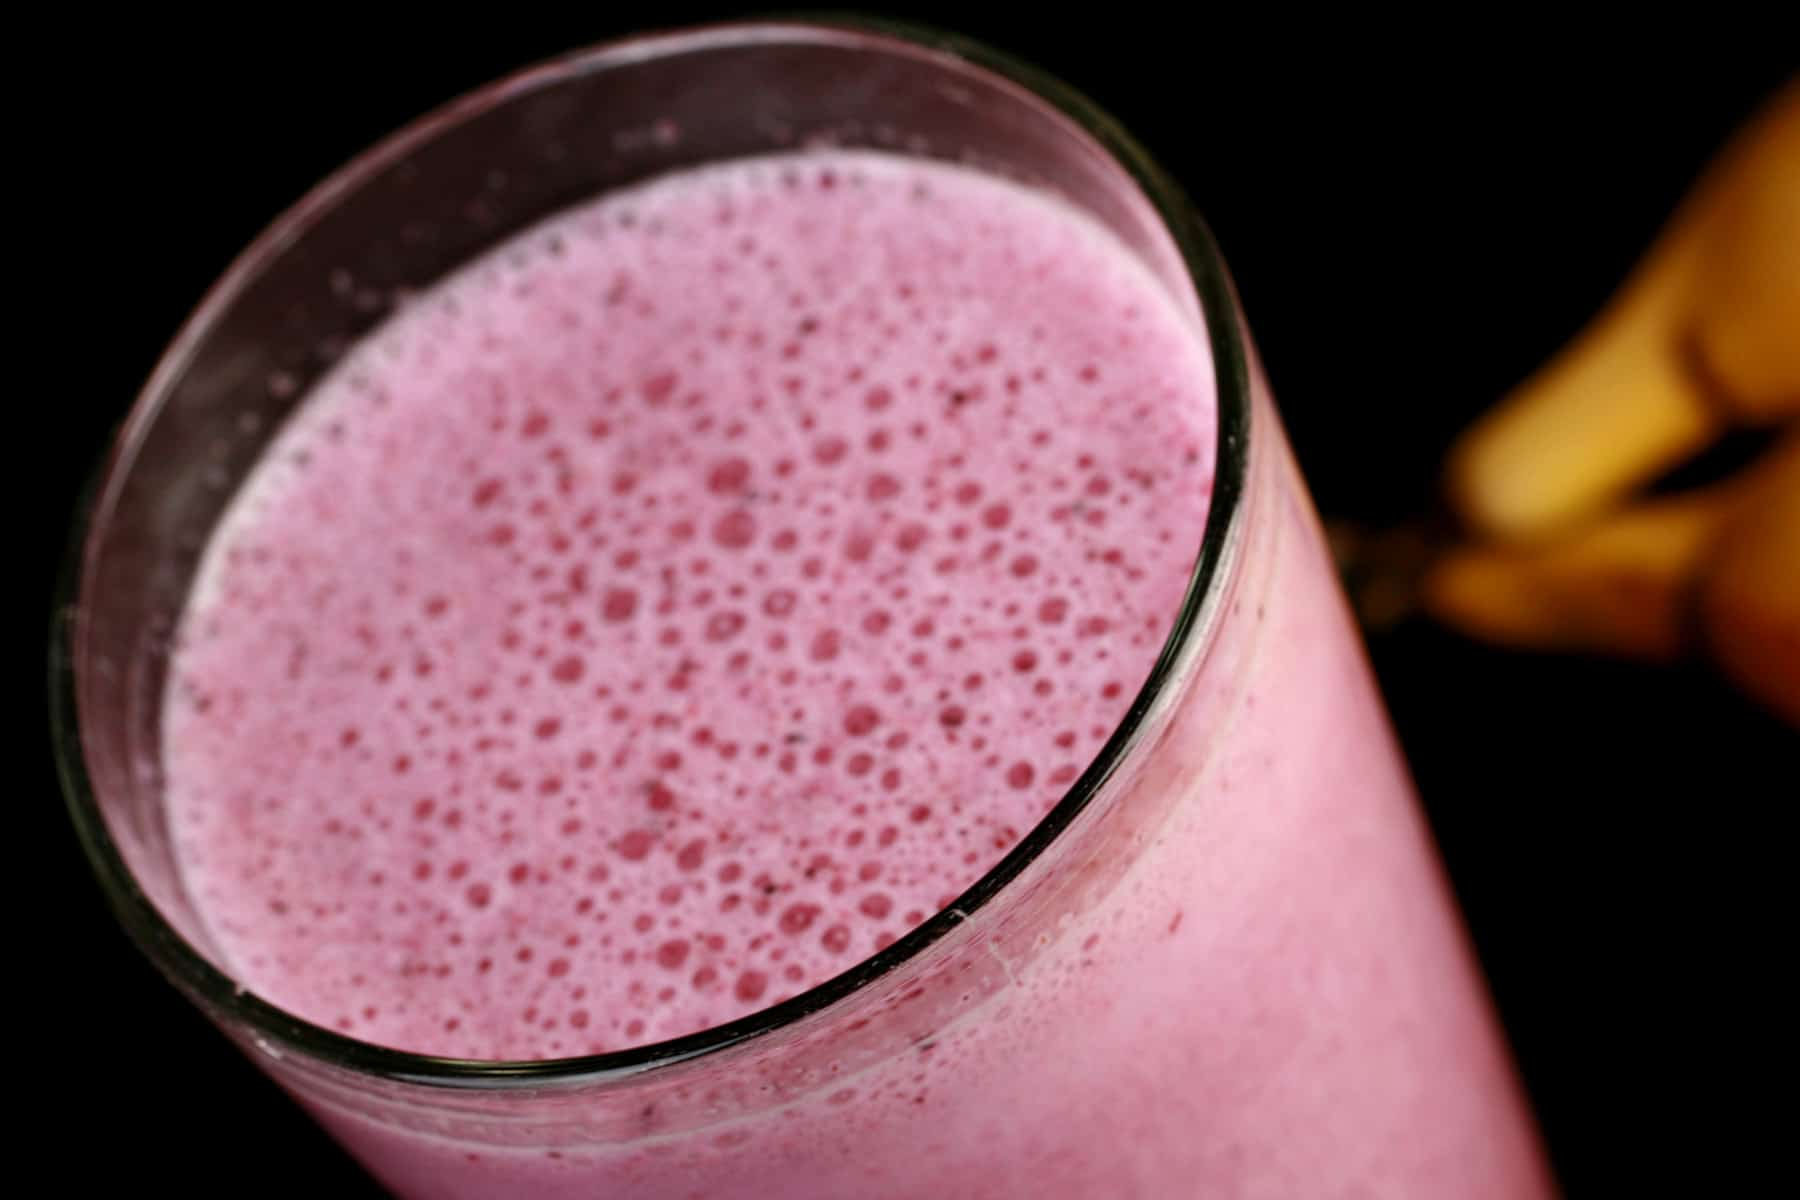 A close up view of a pink coloured smoothie in a tall glass.